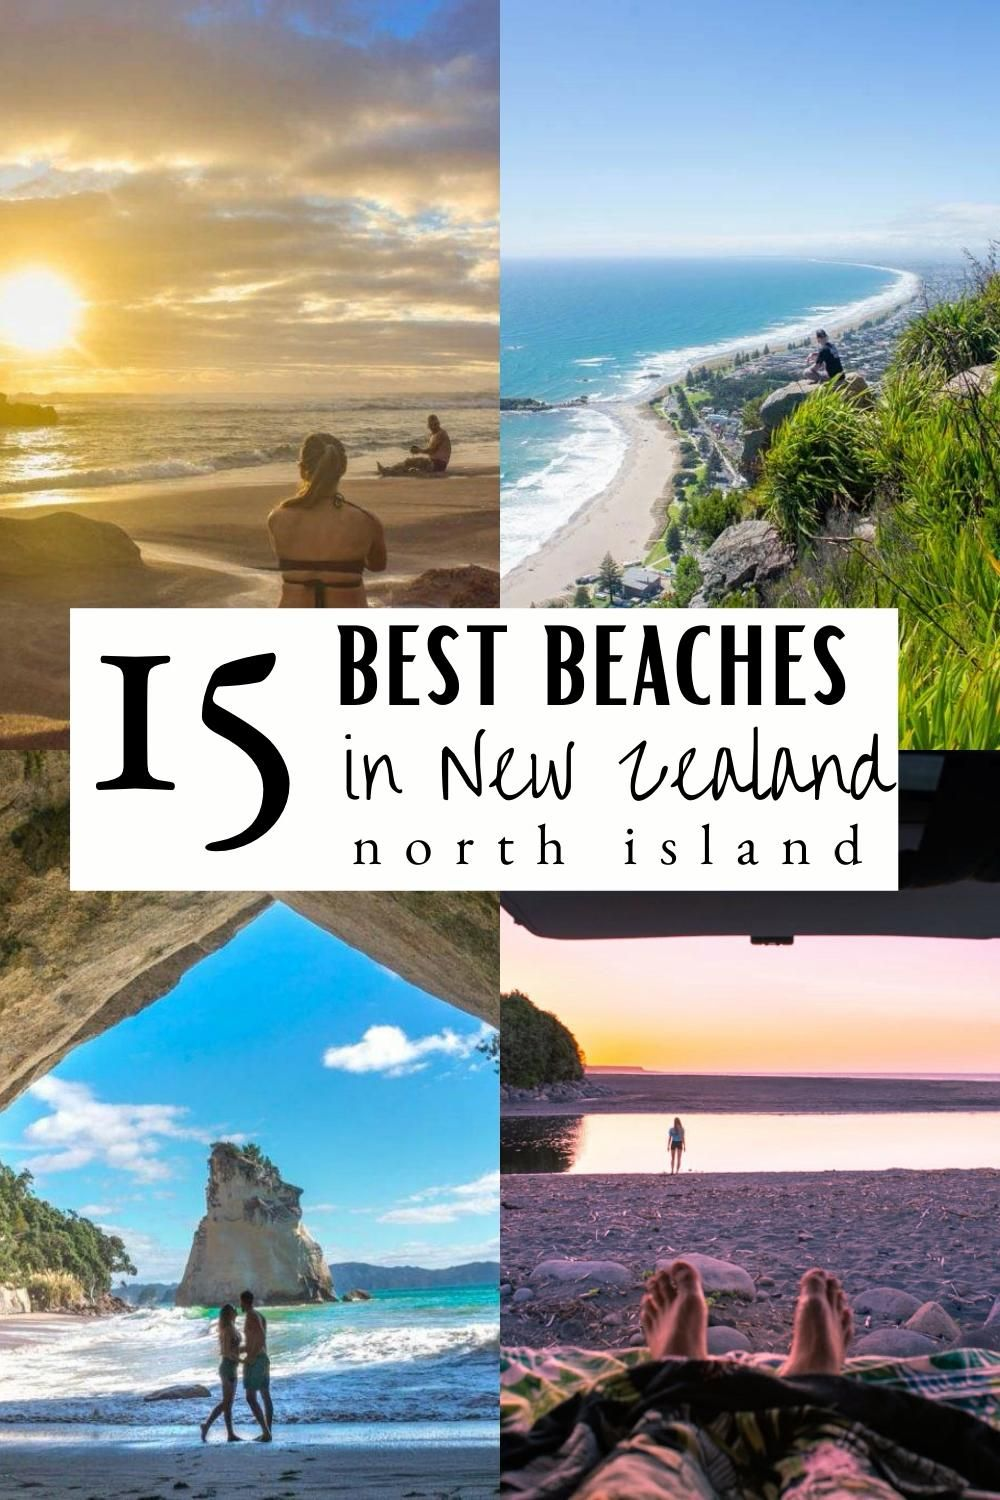 The absolute best beaches in New Zealand, north island! You are going to love this list of GORGEOUS beaches! new zealand travel / new zealand beautiful places / new zealand north island / new zeland photography